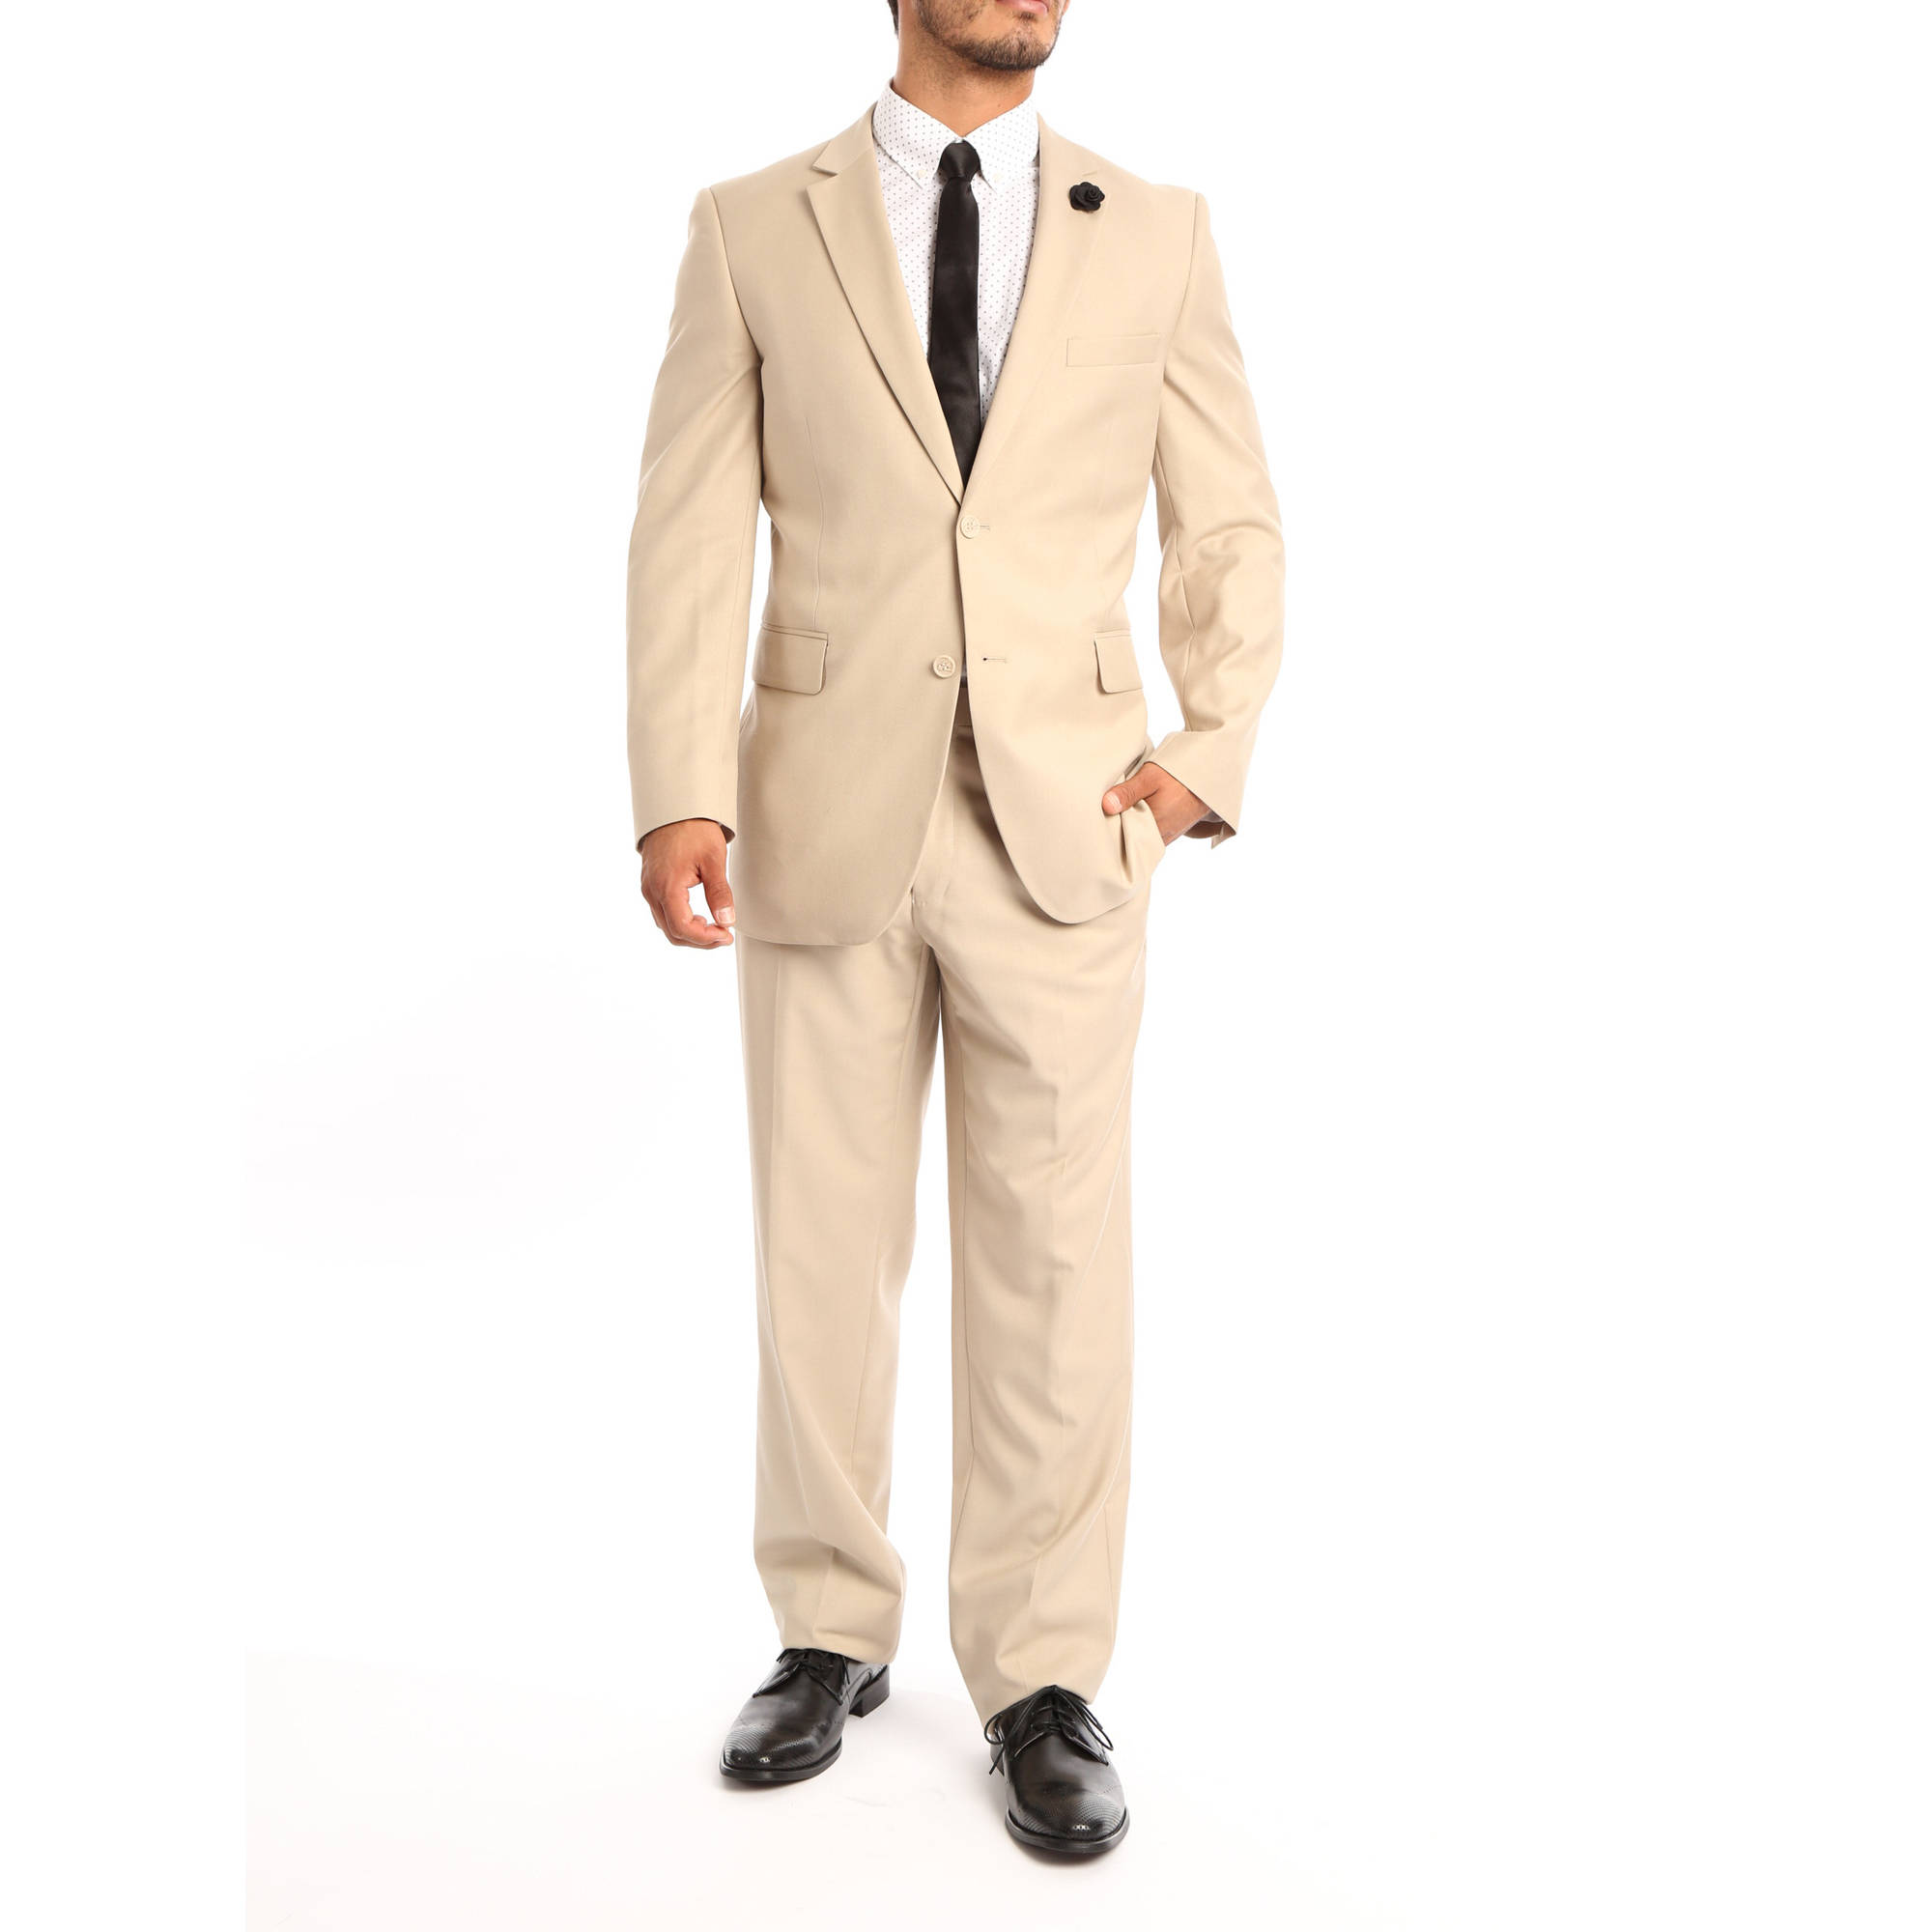 Verno Allegri Men's Tan Classic Fit Italian Styled Two Piece Suit